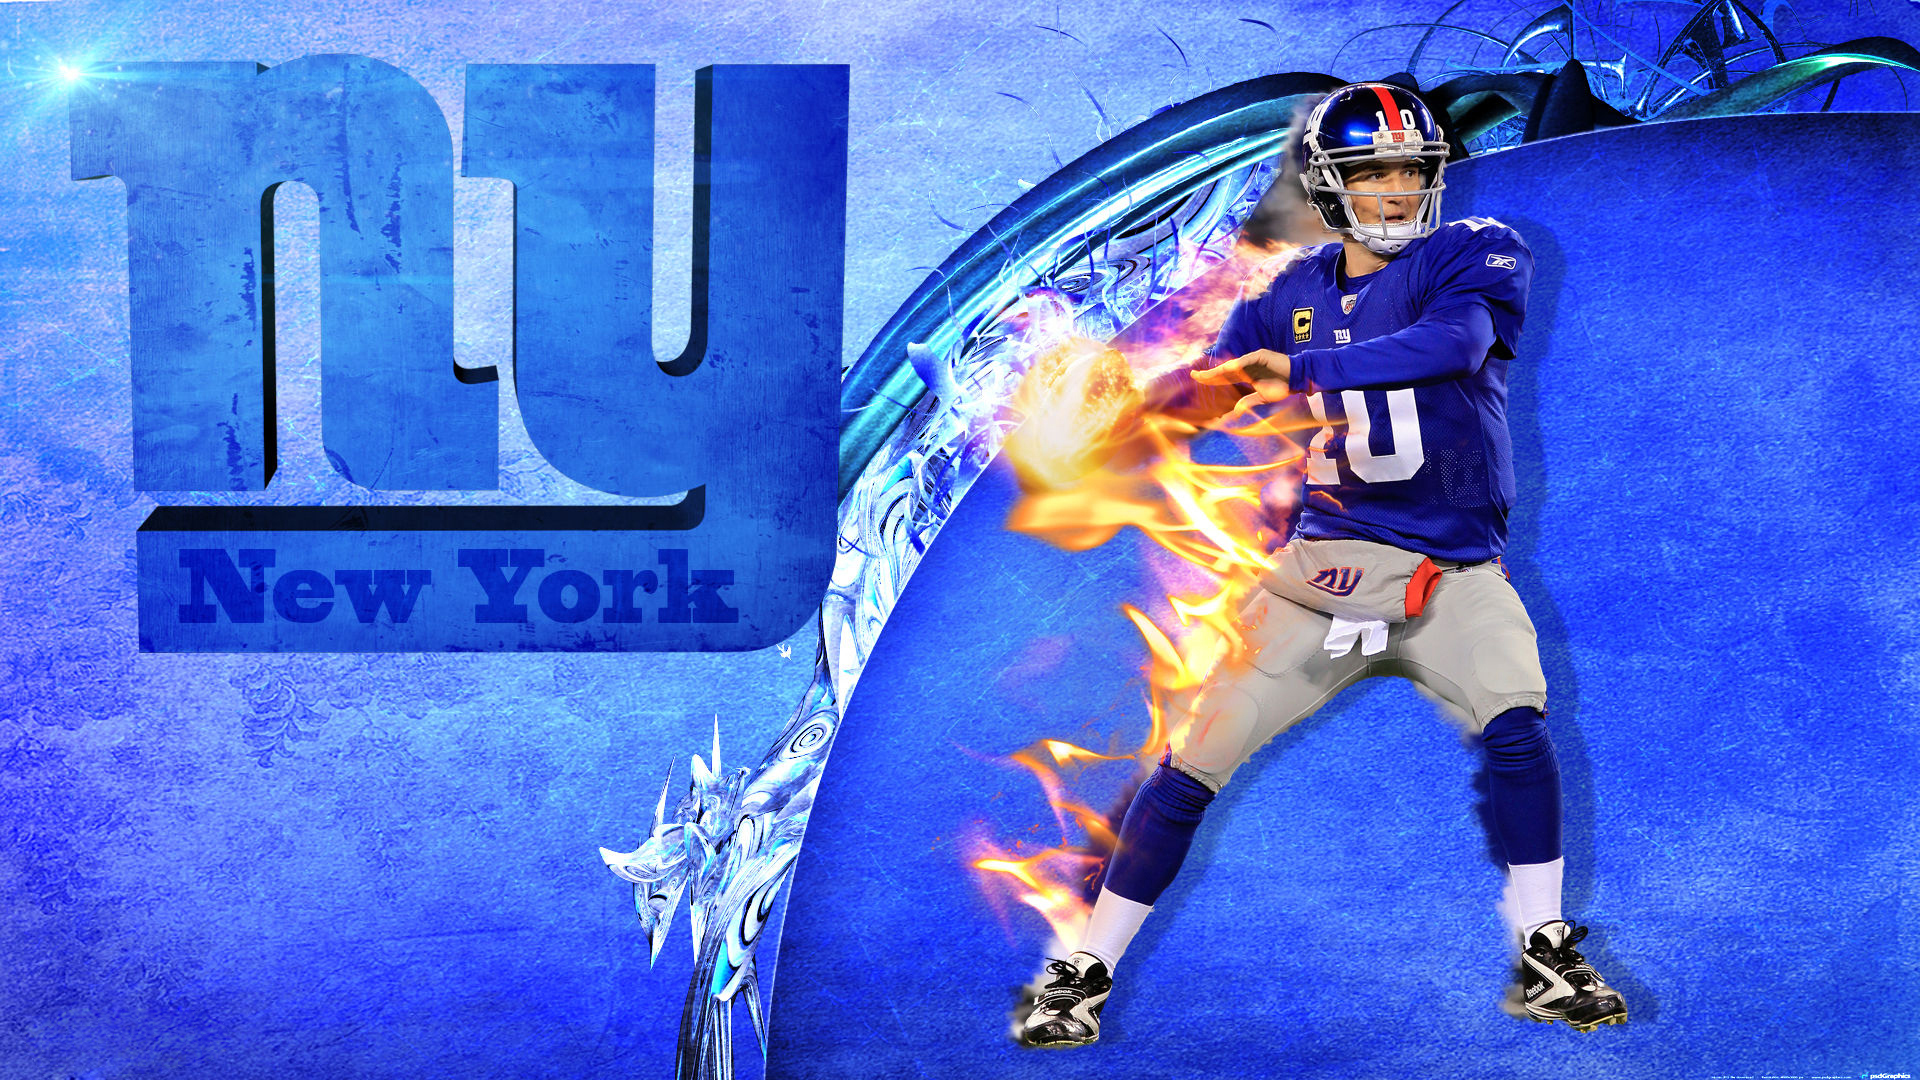 New York Giants High Quality Wallpapers